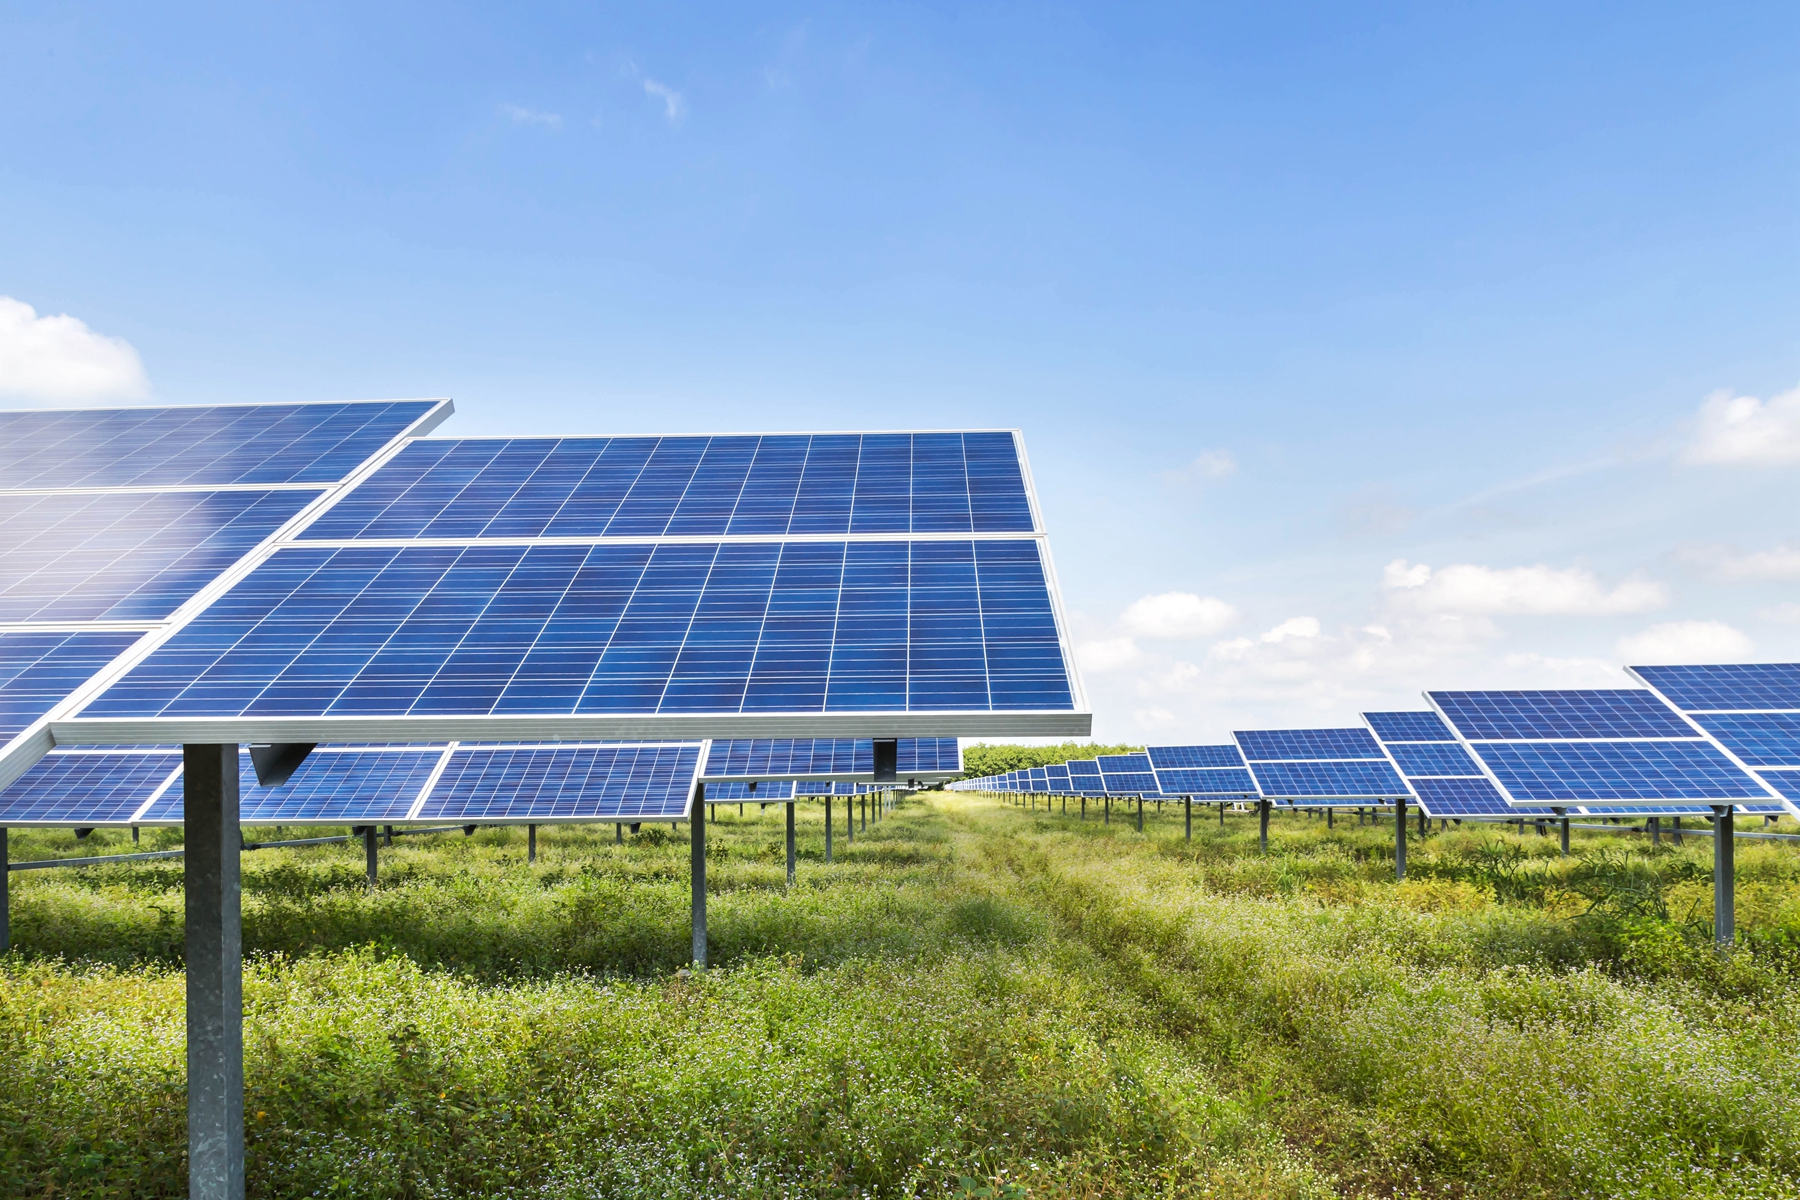 solar photovoltaic power plants n various Frequently asked questions about solar photovoltaic and or particles of solar energy photons contain various amounts by most of today's power plants.